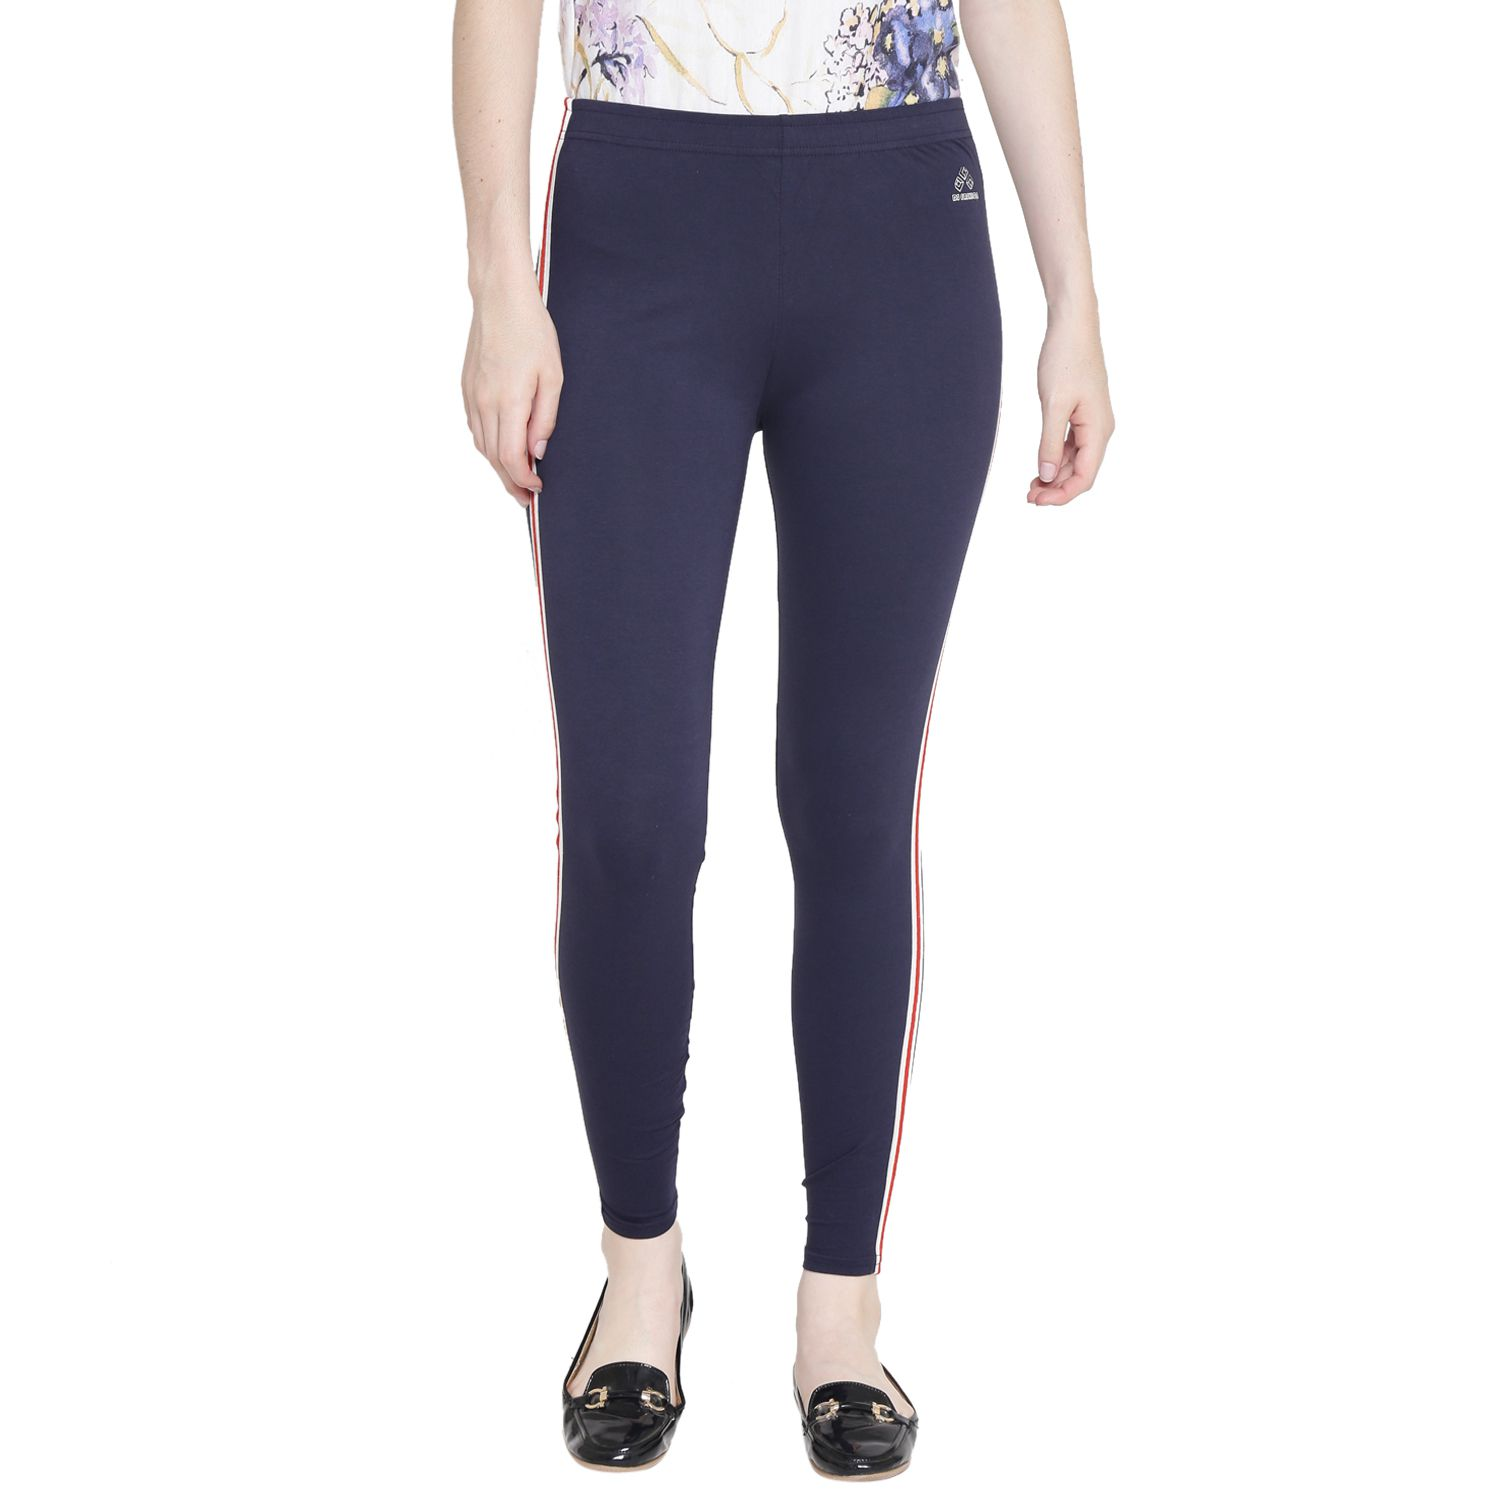 Ds Fashion Cotton Jeggings - Navy